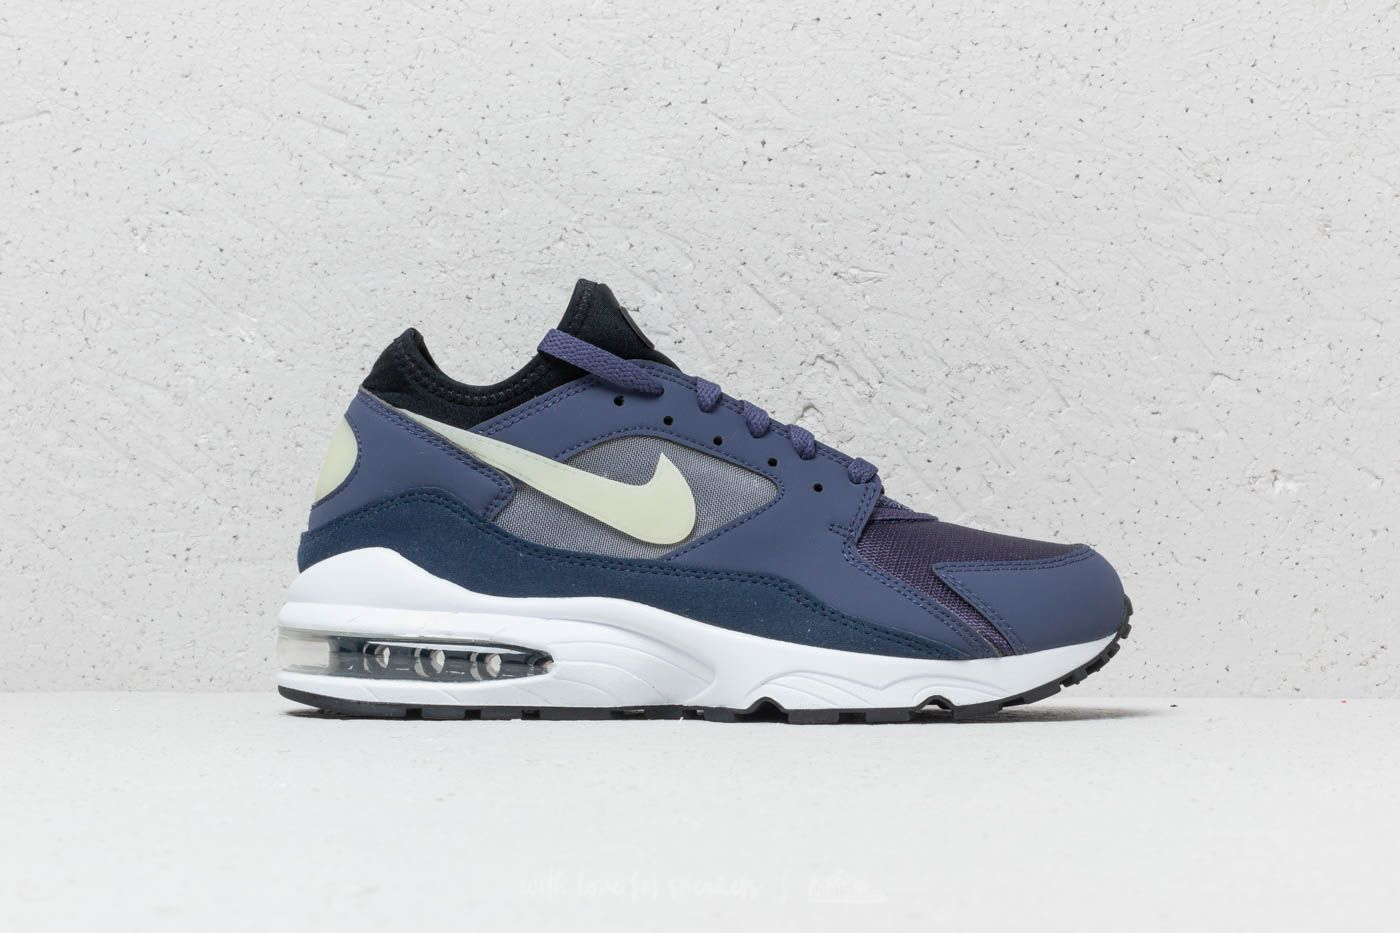 uk availability 6b895 5d539 Nike Air Max 93 Neutral Indigo  Obsidian-Fossil at a great price 100 €